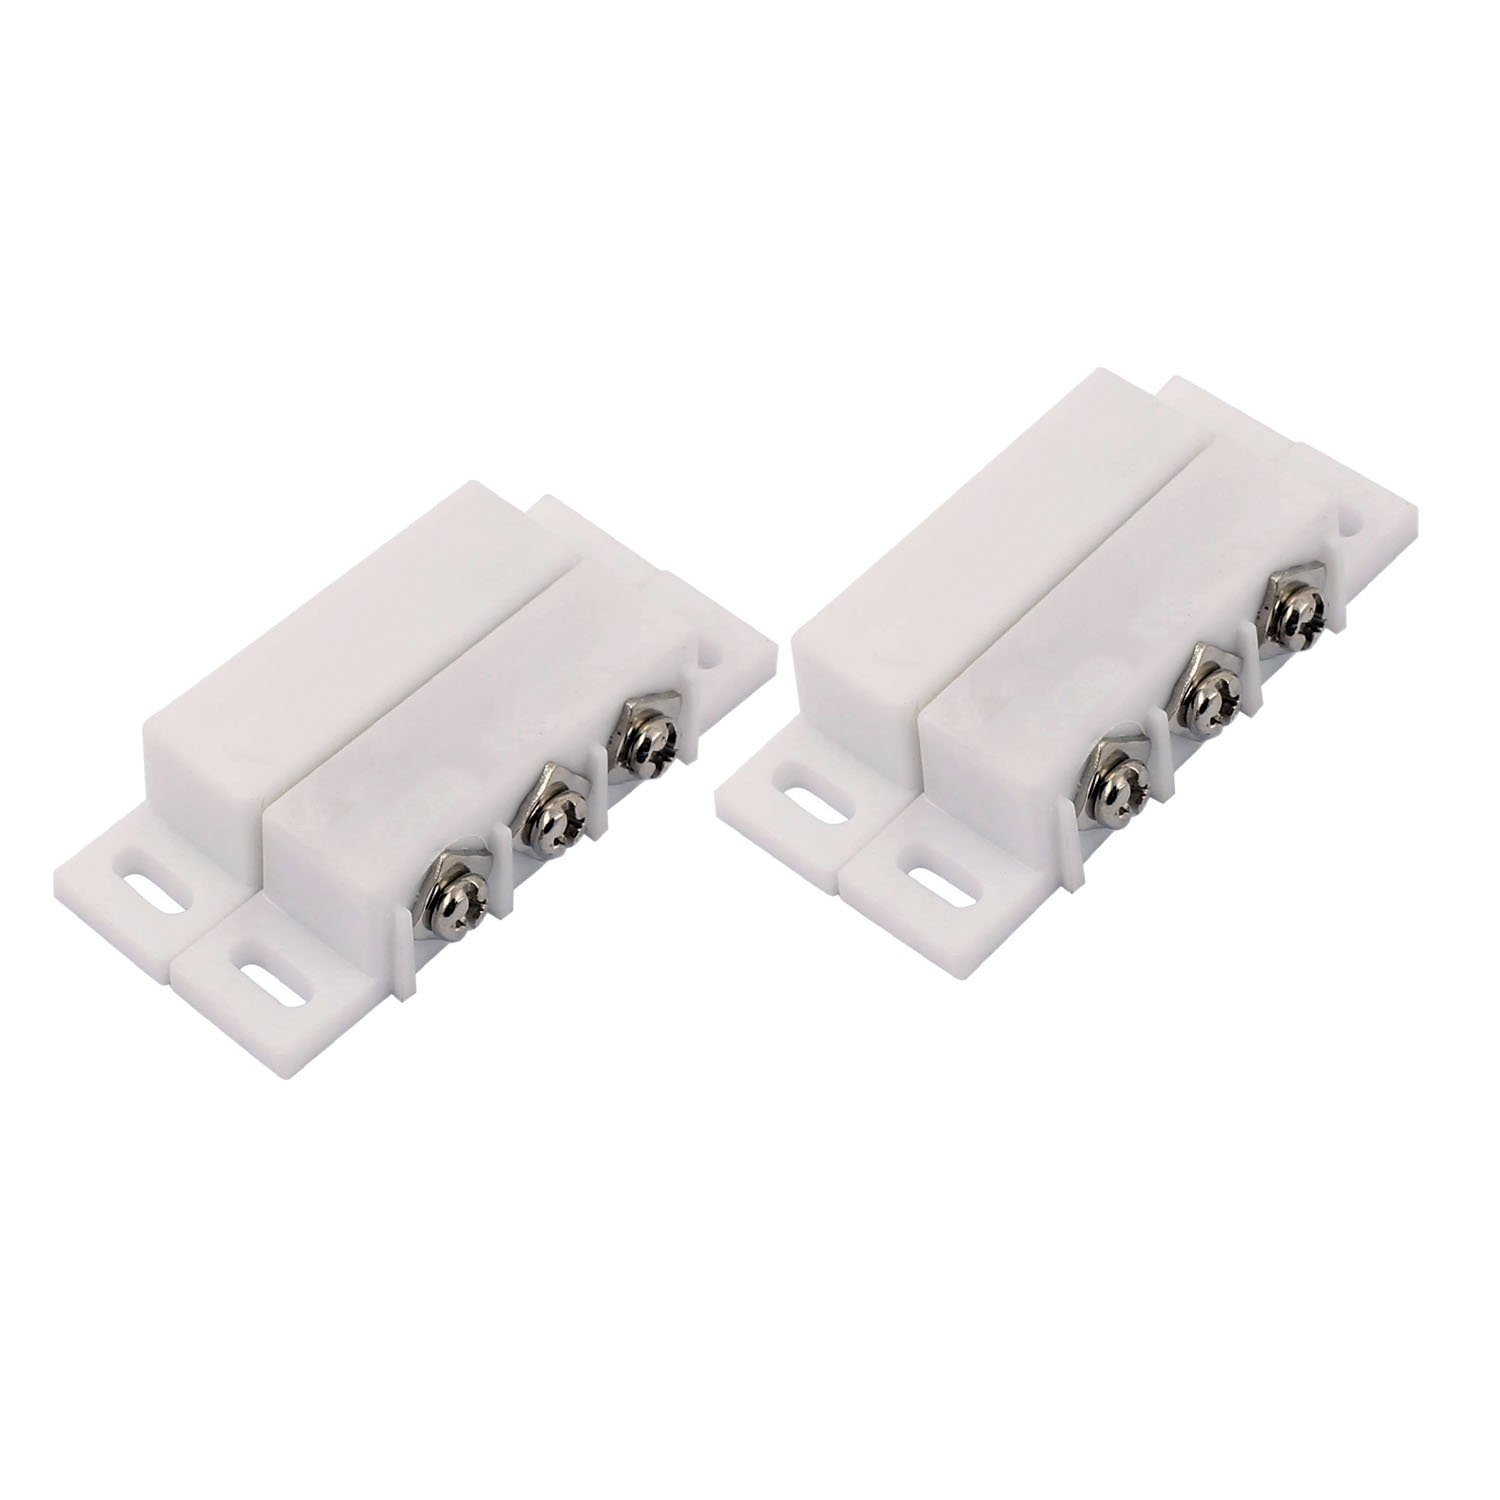 2sets Magnetic Reed Switch Normally Open Closed Nc No Circuit Until The Limit Opens Relay Is Door Alarm Window Security Camera Photo